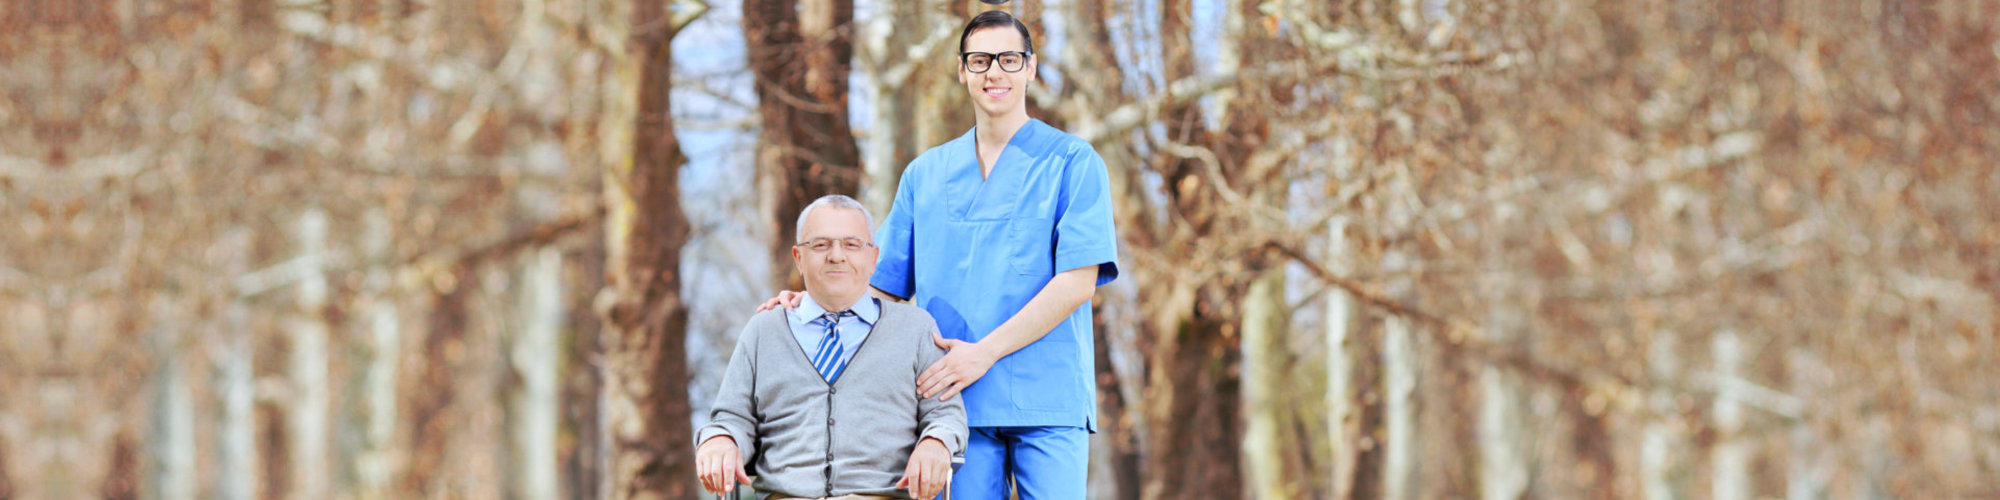 male nurse and senior man are smiling